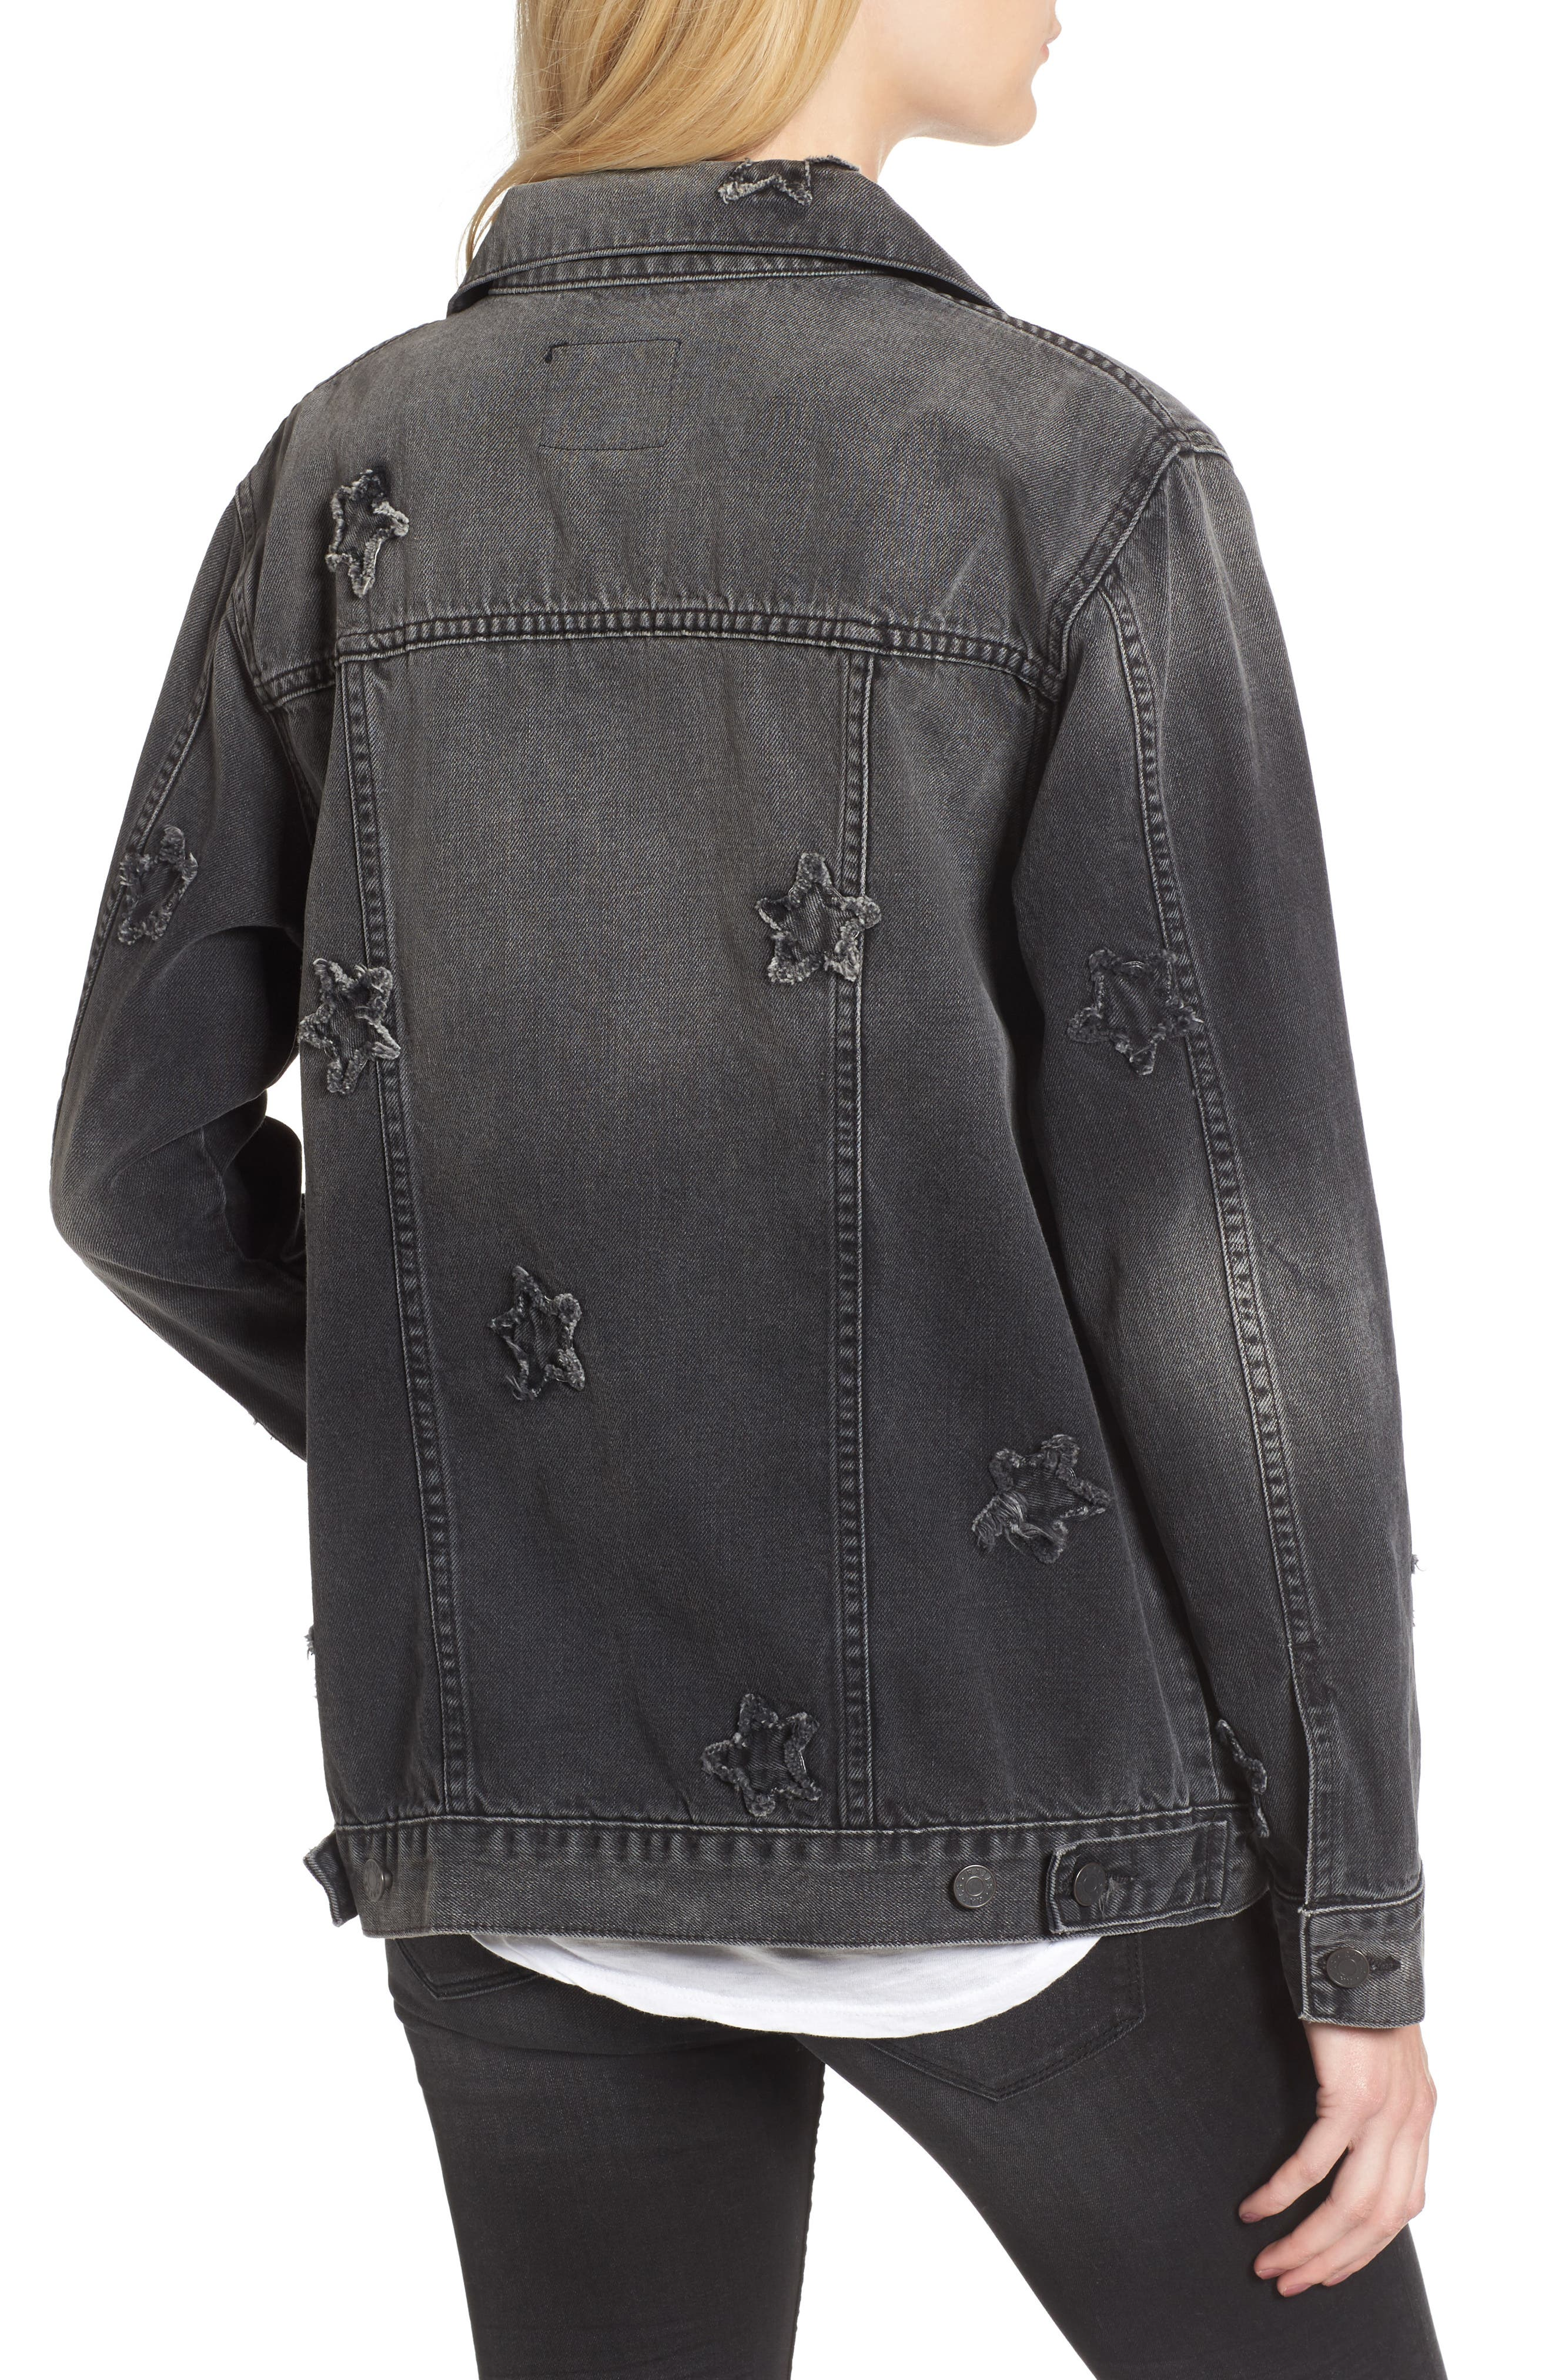 Knox Star Patch Denim Jacket,                             Alternate thumbnail 2, color,                             006